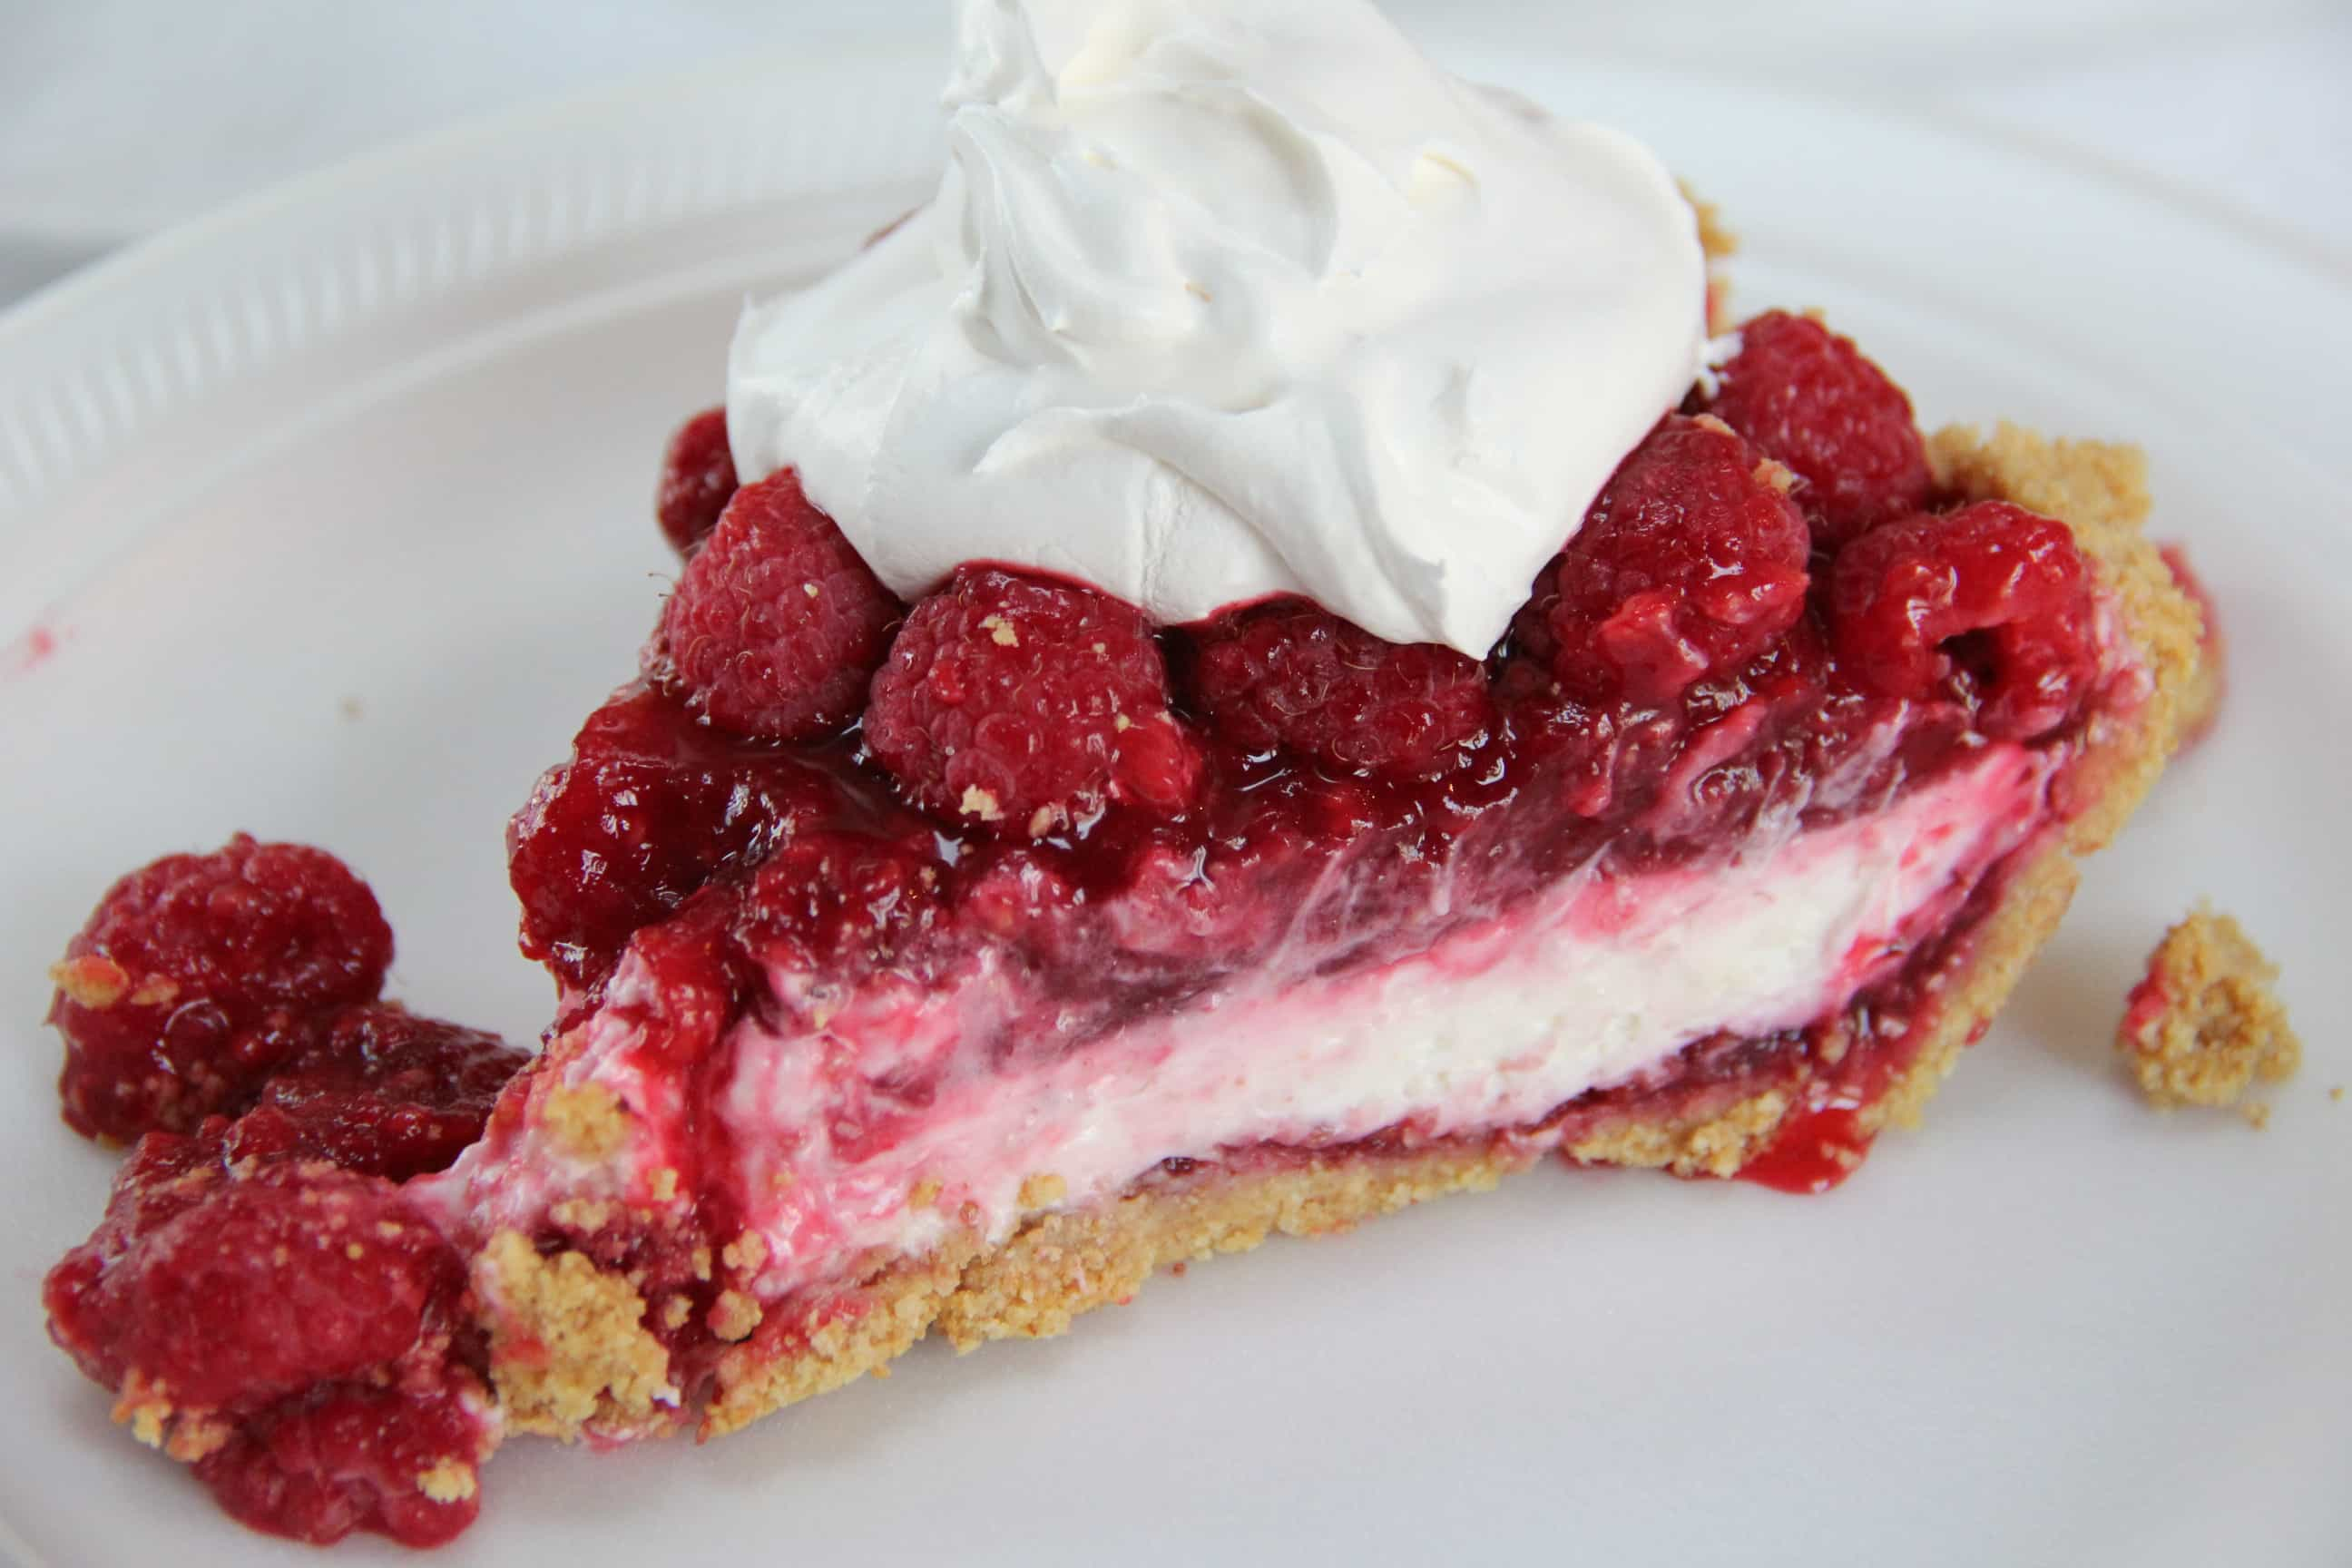 Raspberry Pie Recipe with Graham Cracker Crust and Whipped Layer